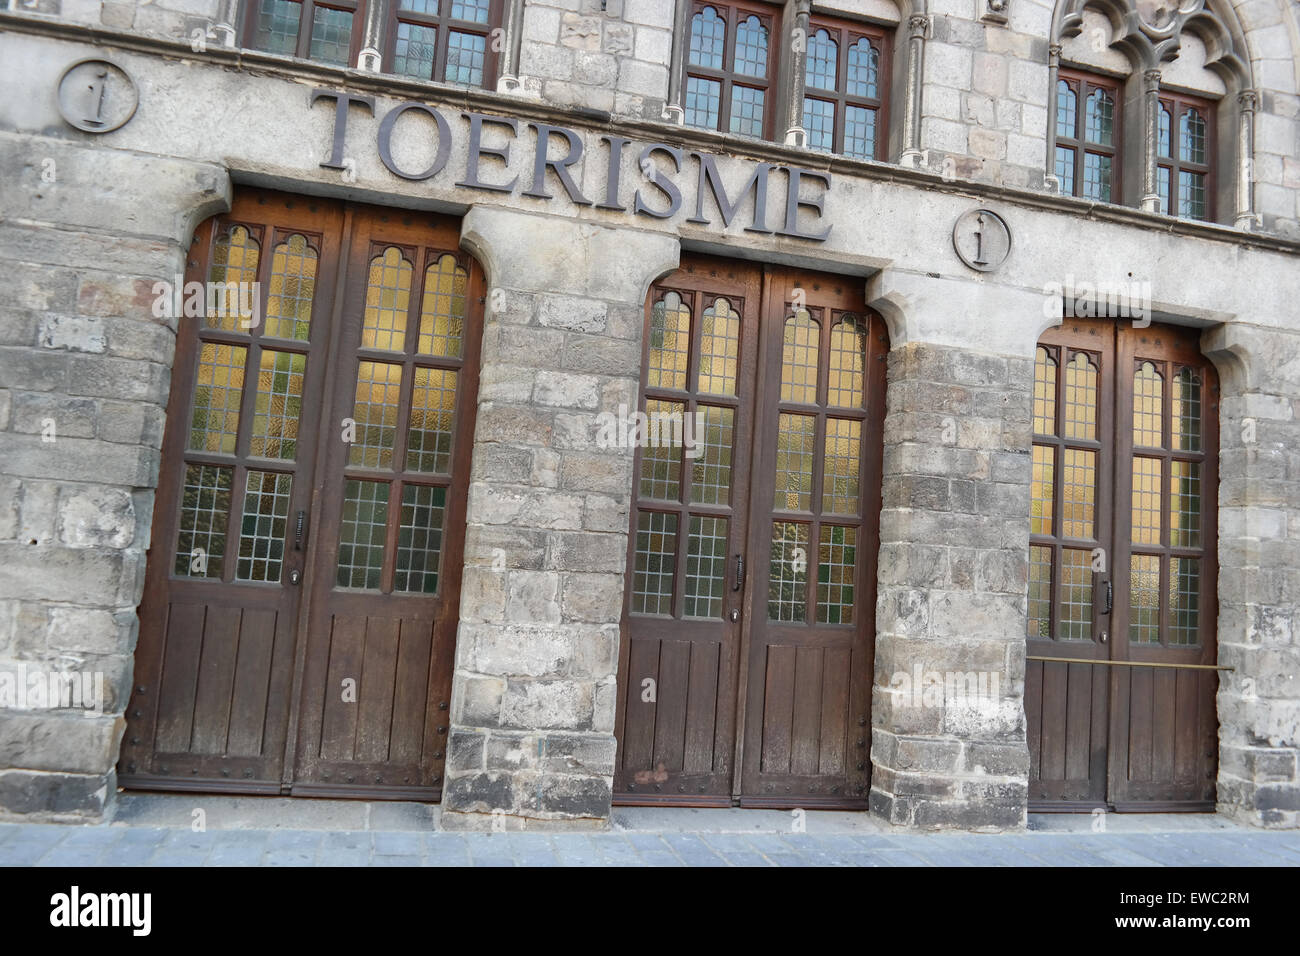 Ypres Tourist Office in the Cloth Hall building - Ypres a Belgian municipality located in West Flanders. - Stock Image